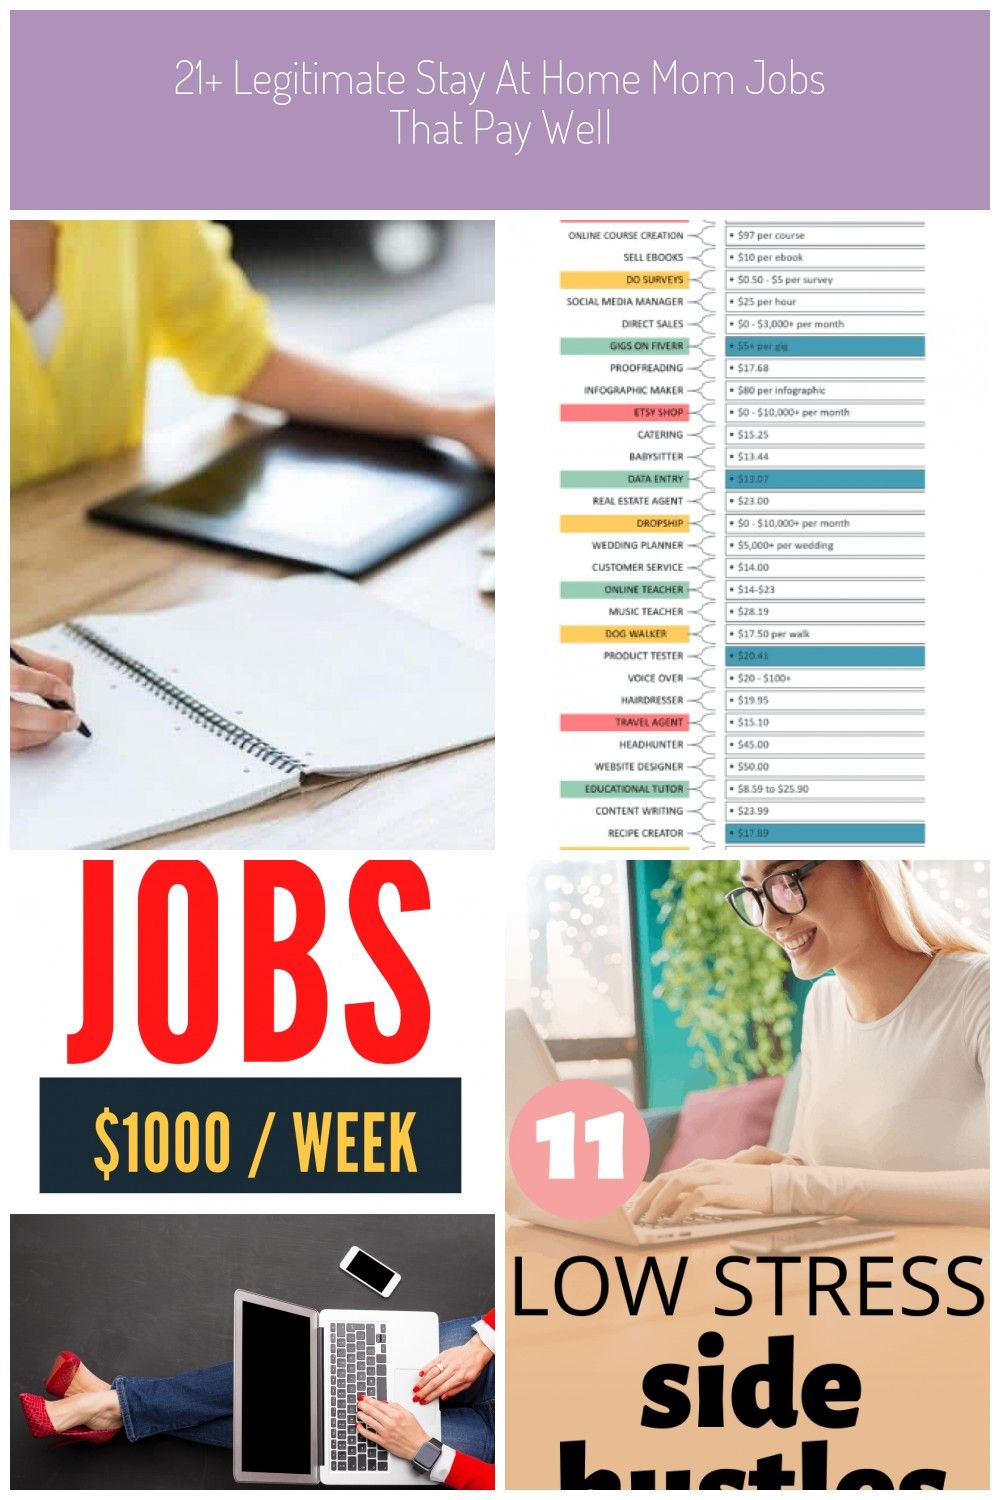 Looking for the best stay at home mom jobs that pay well